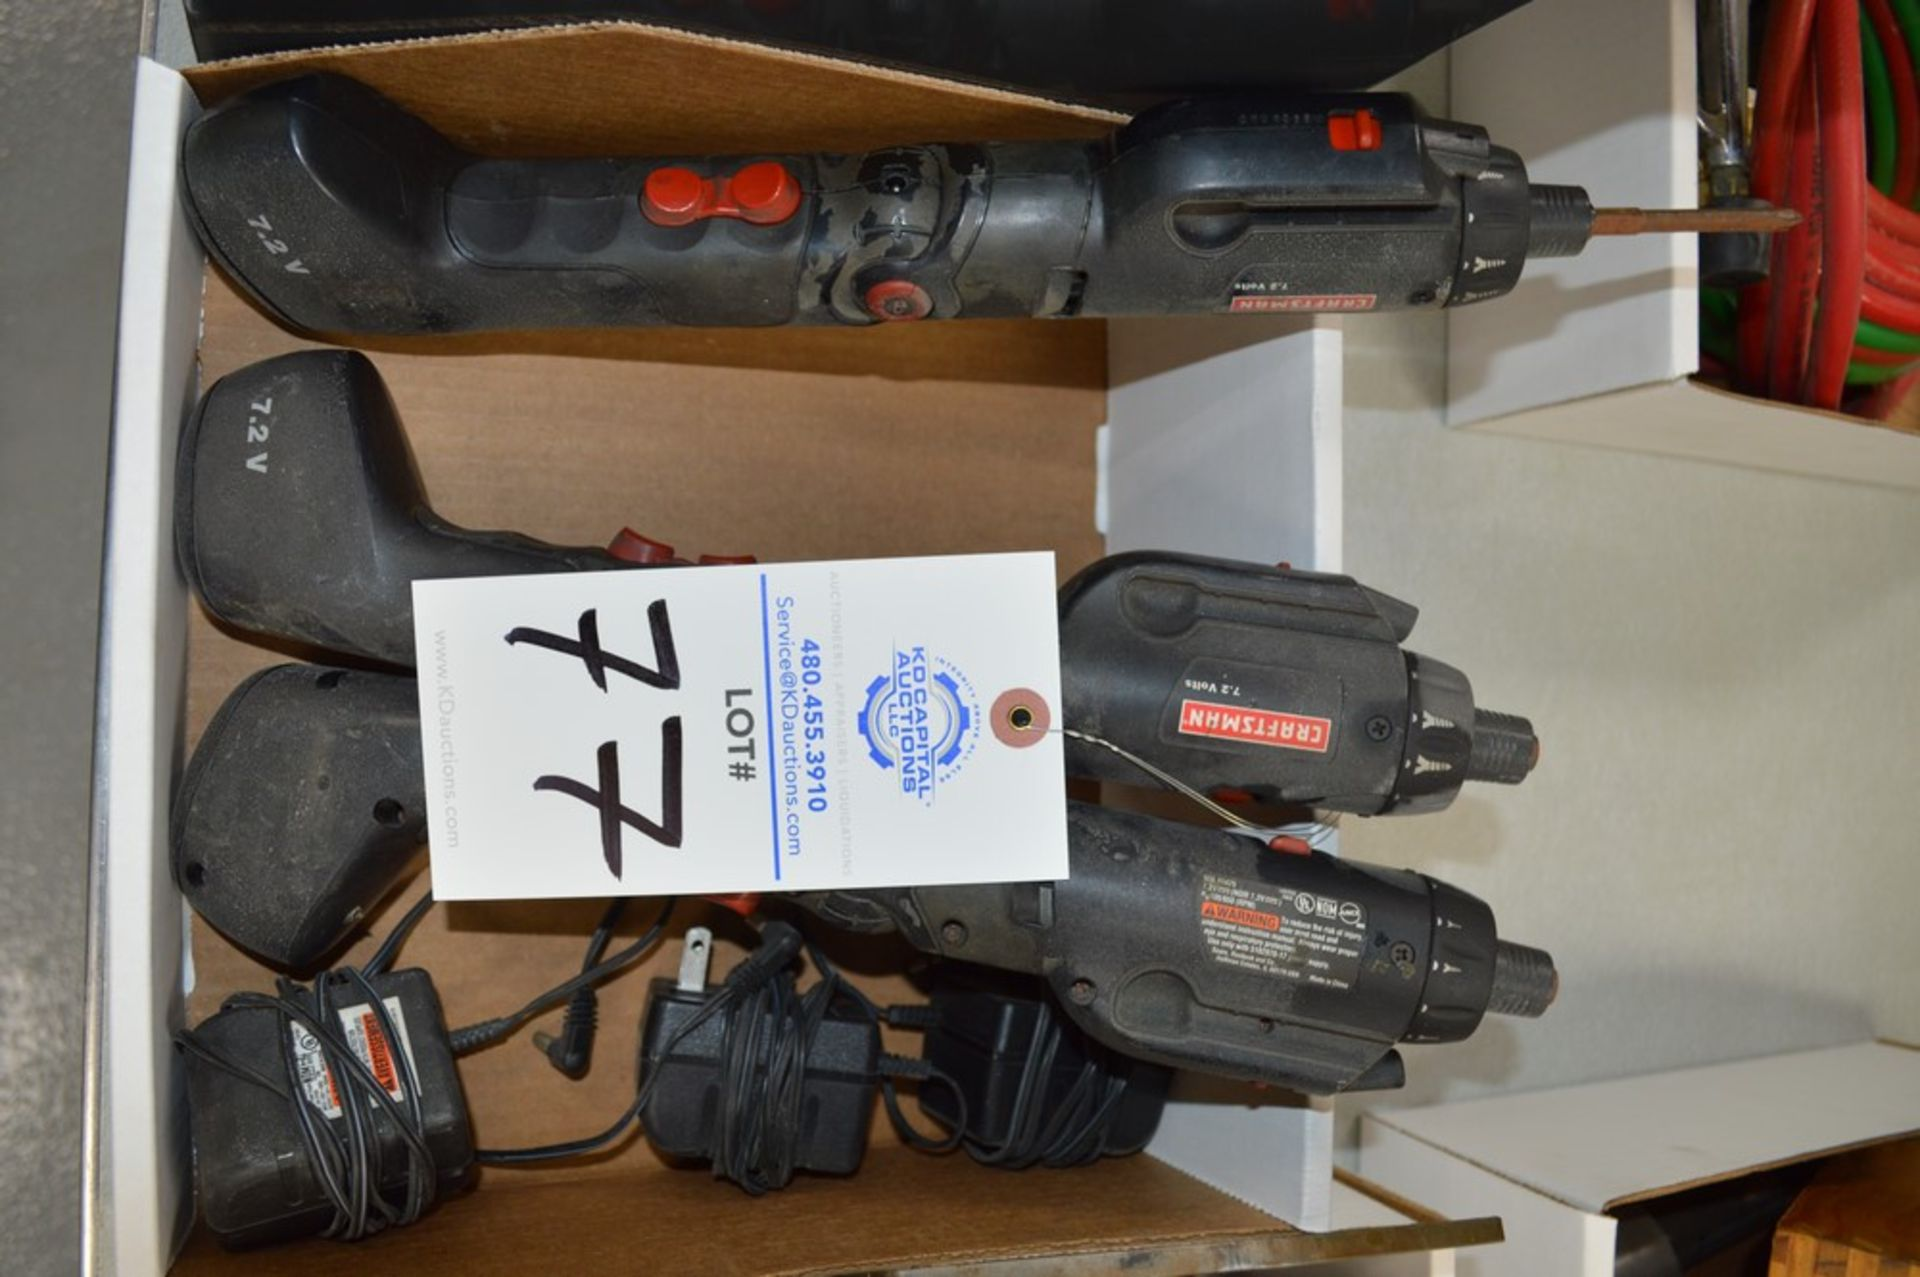 (3) Craftsman 7.2 volt electric screwdrivers with chargers and batteries